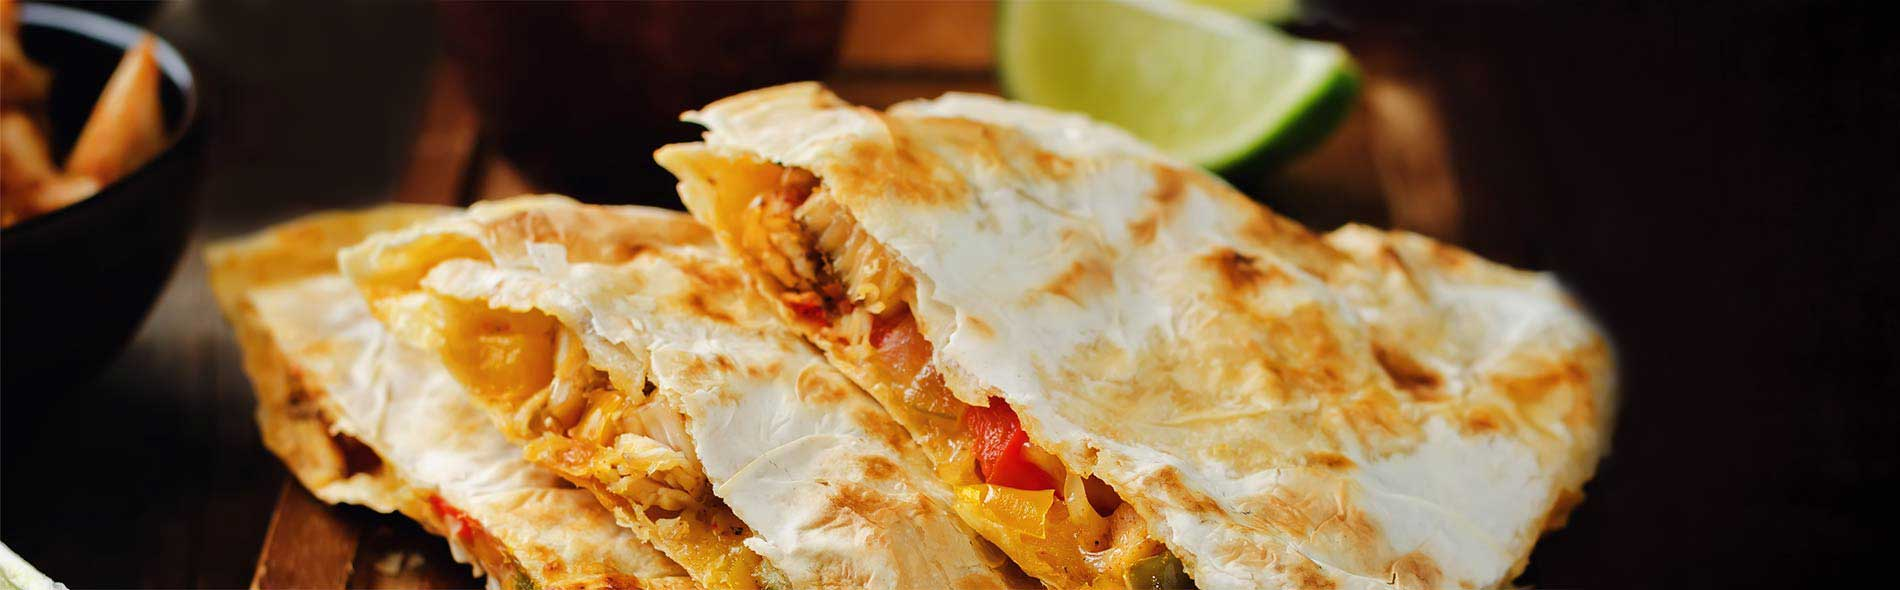 quesadilla_hero_slider_2-1900x590